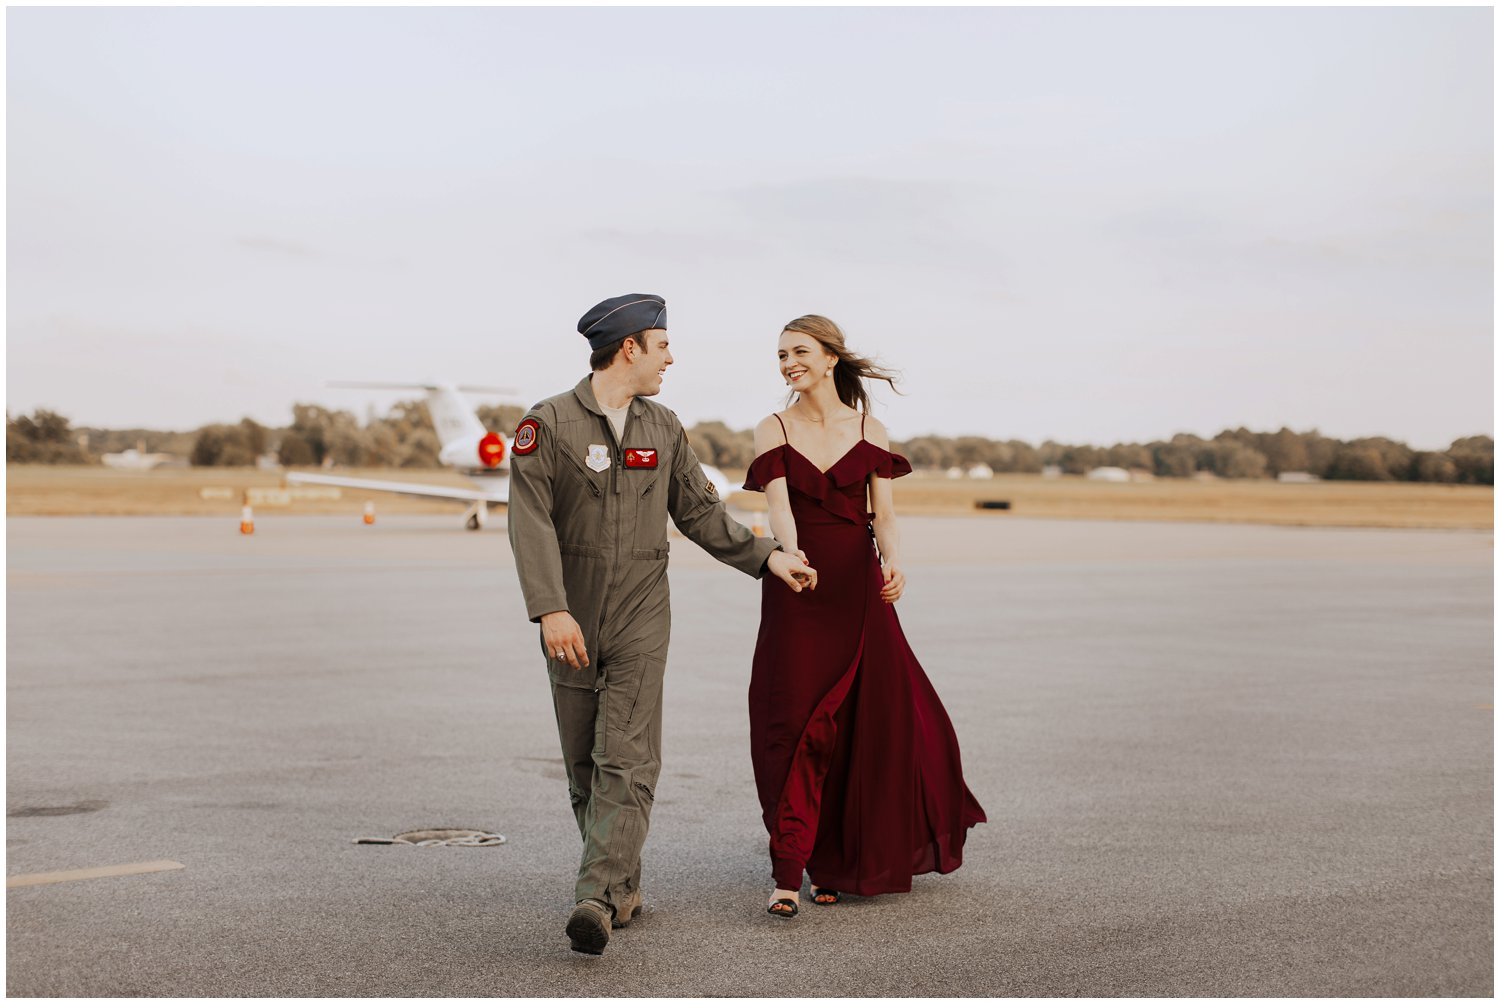 sunset engagement photos | Baltimore wedding photographer | Easton wedding photographer | Eastern shore engagement photography | Easton Airport Engagement photography